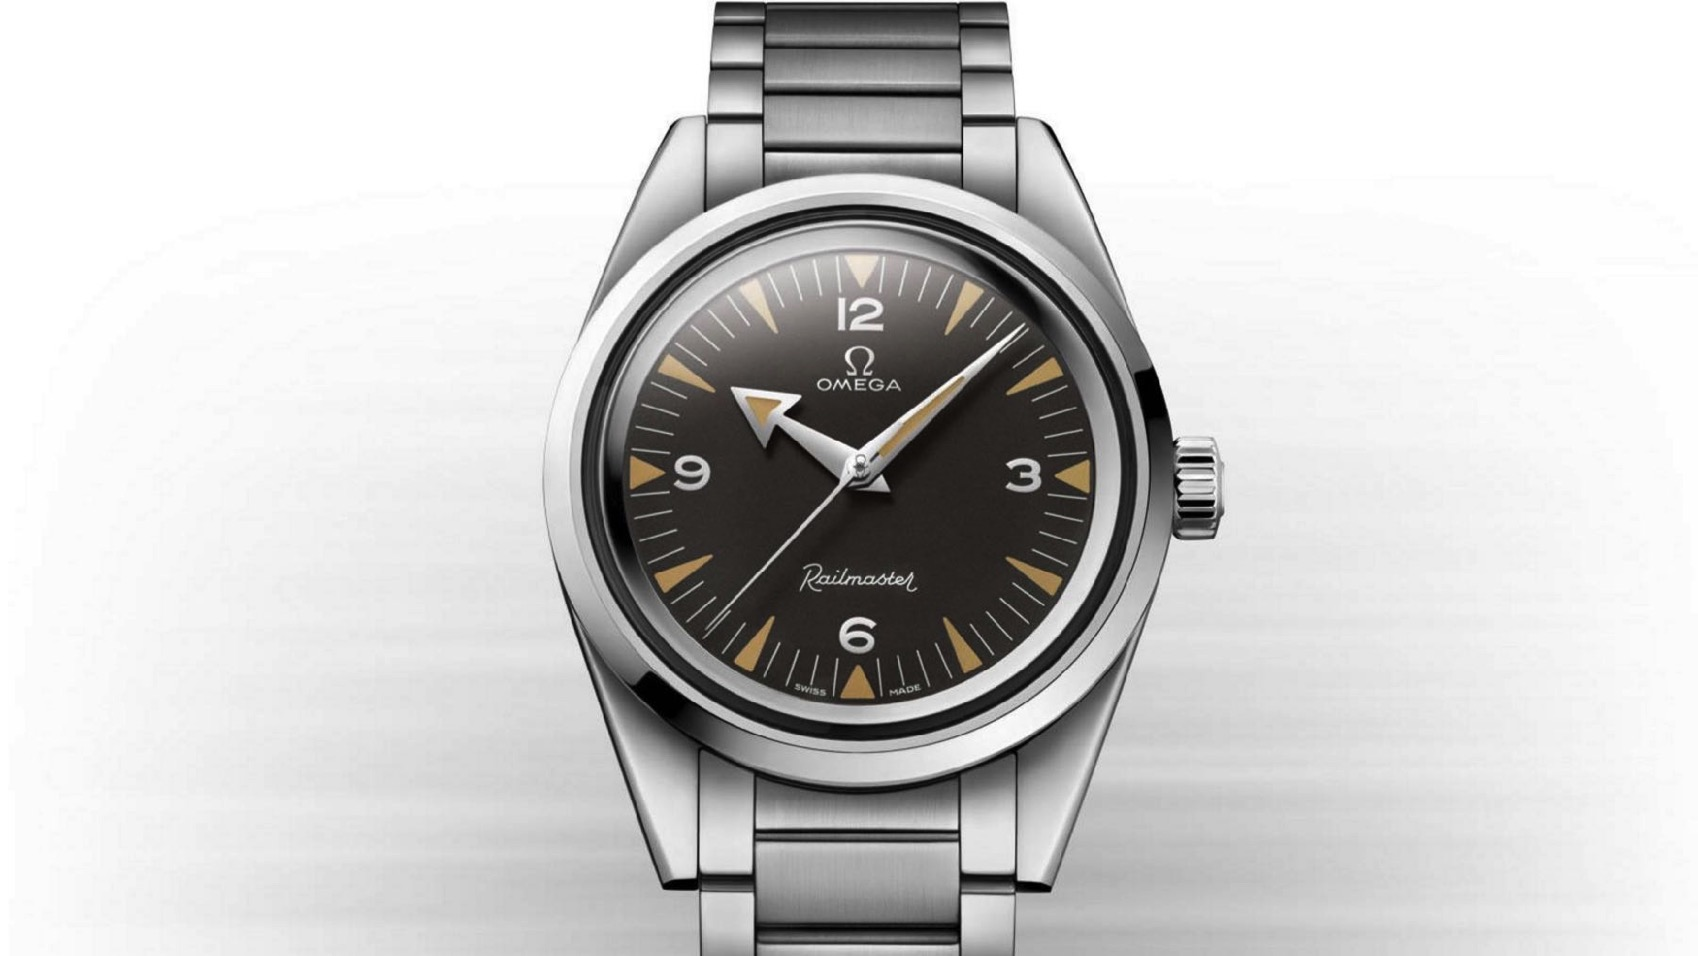 01 OMEGA 1957 Trilogy Limit Edition Railmaster